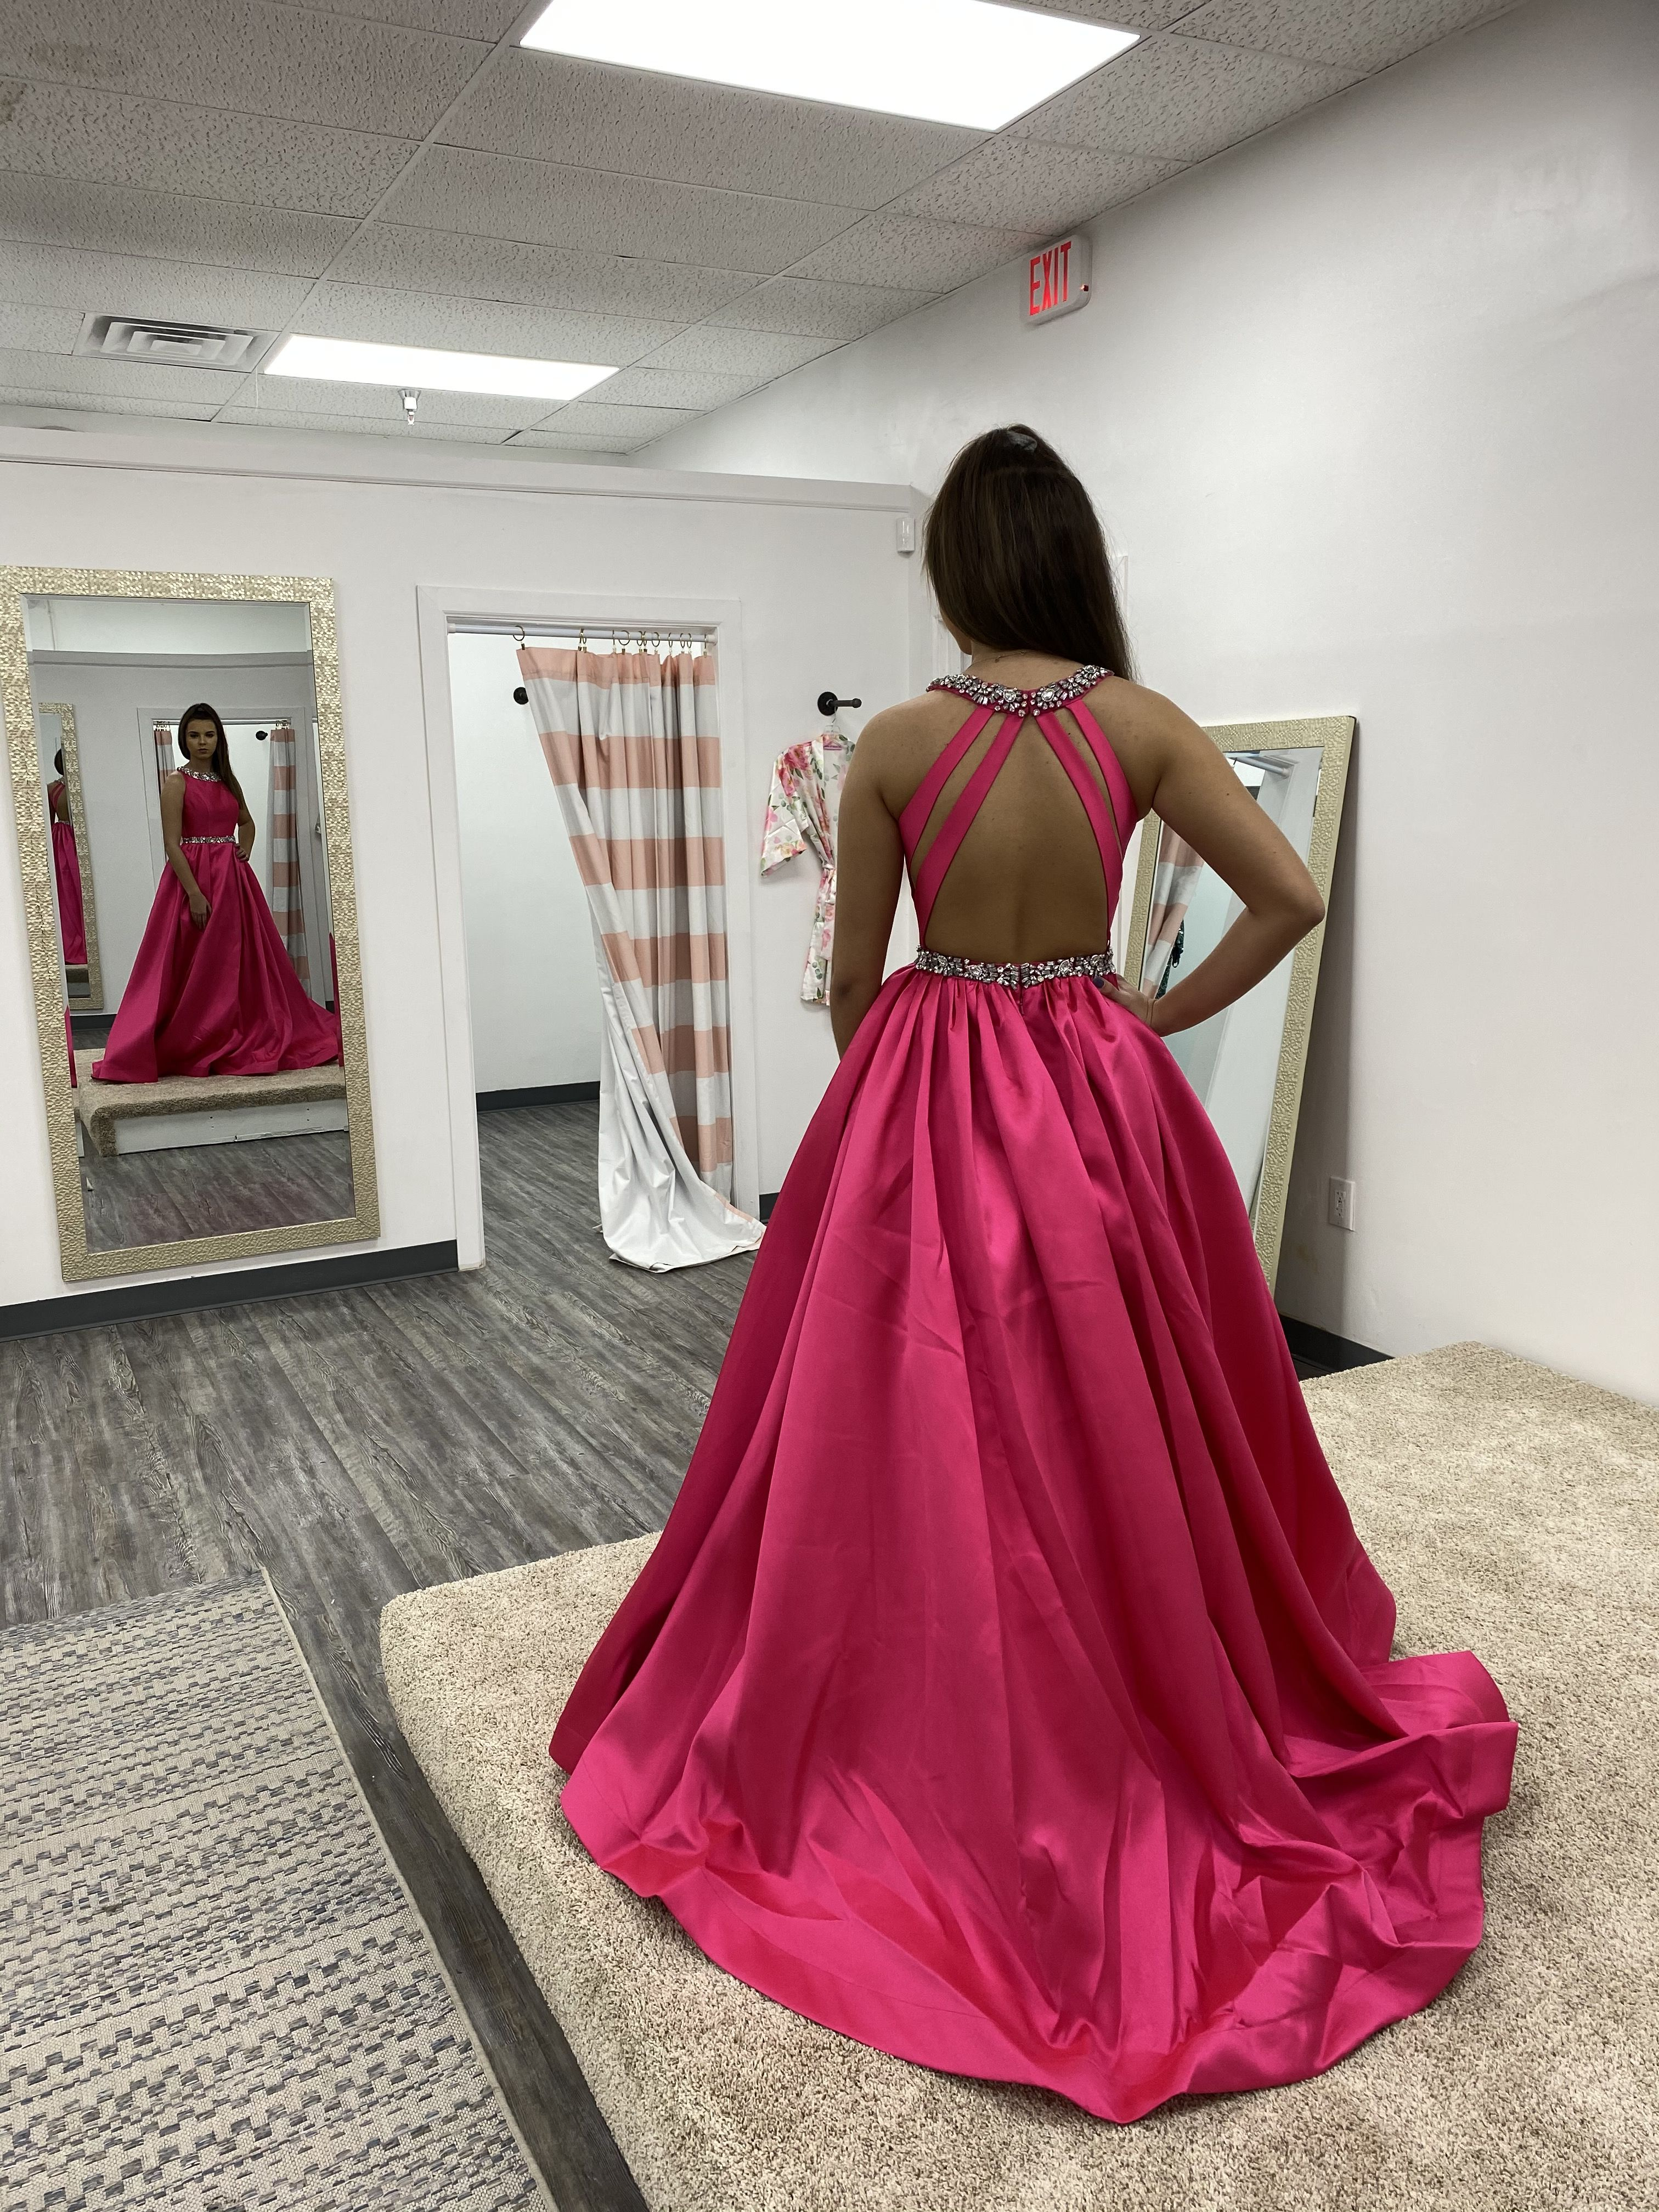 Pin by Lillylayneboutique on prom 2020 | Formal dresses ...